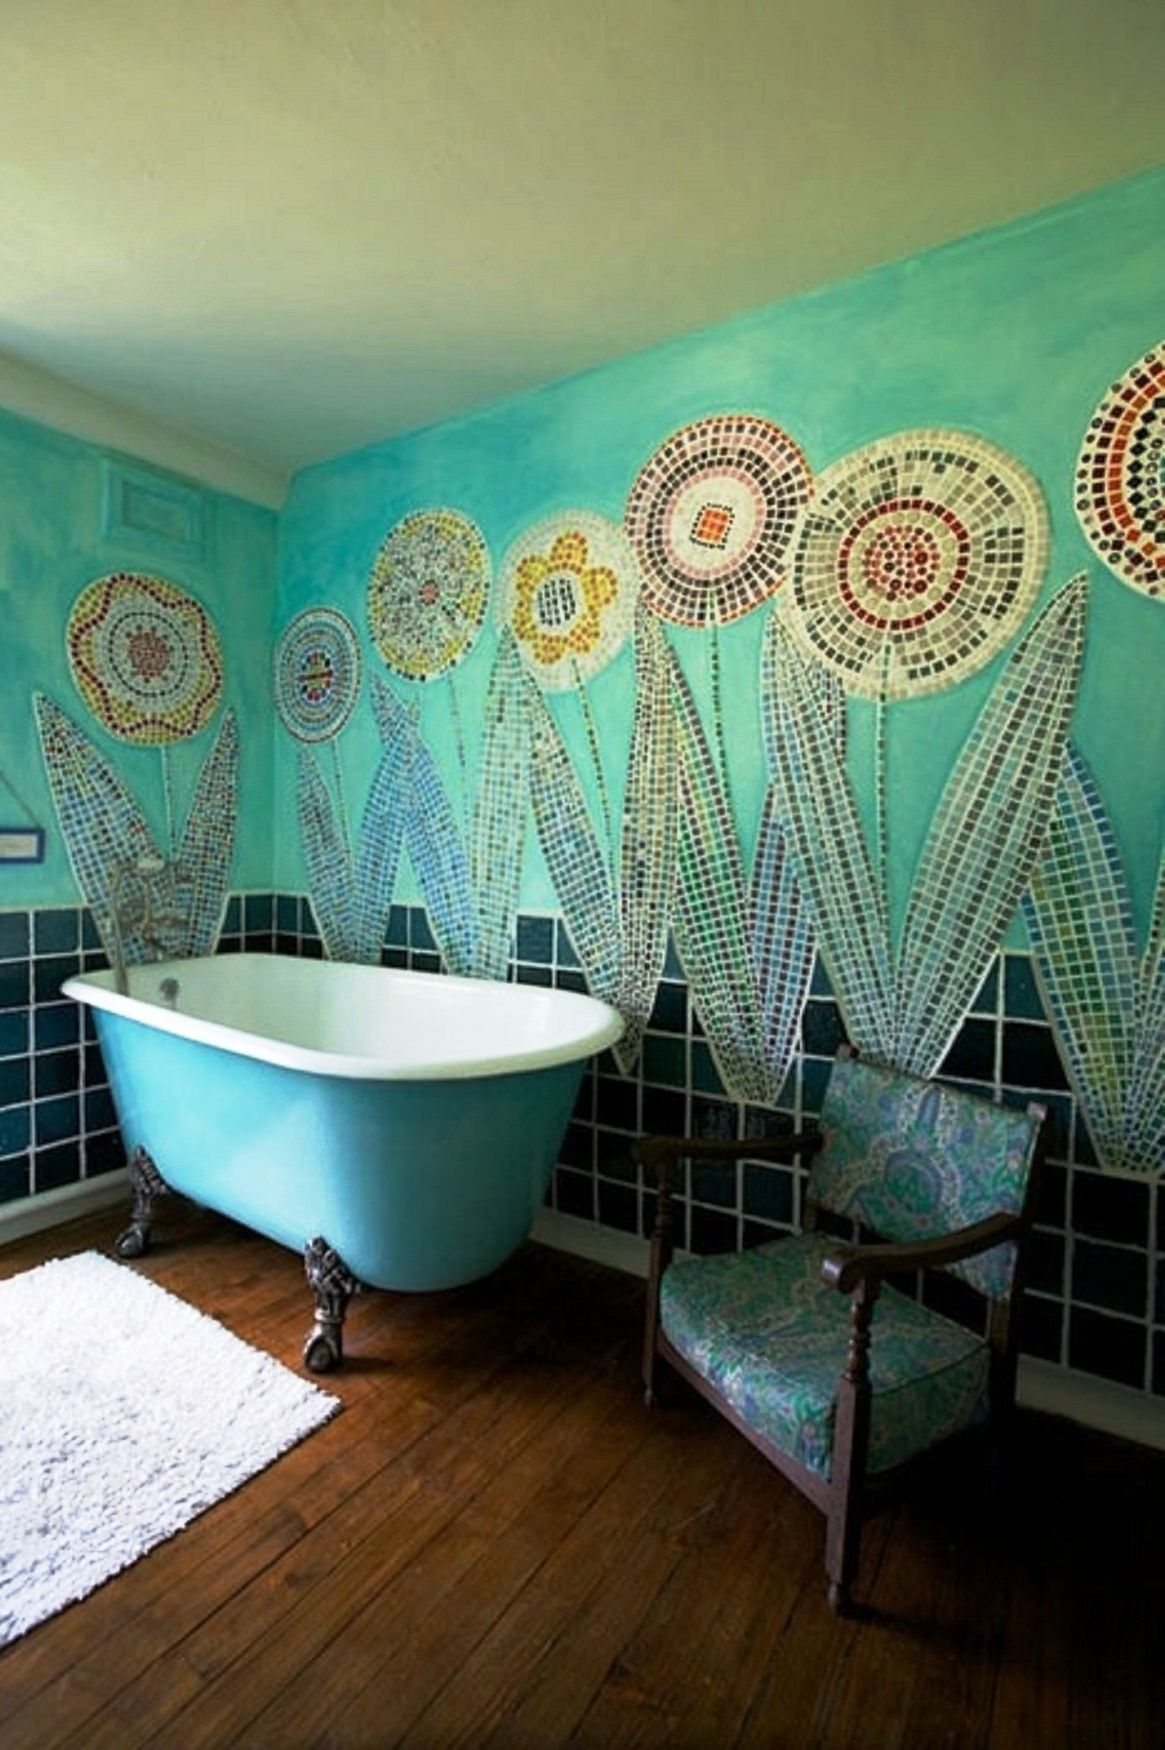 Awesome Bohemian Bathroom Design Inspirations Turquoise